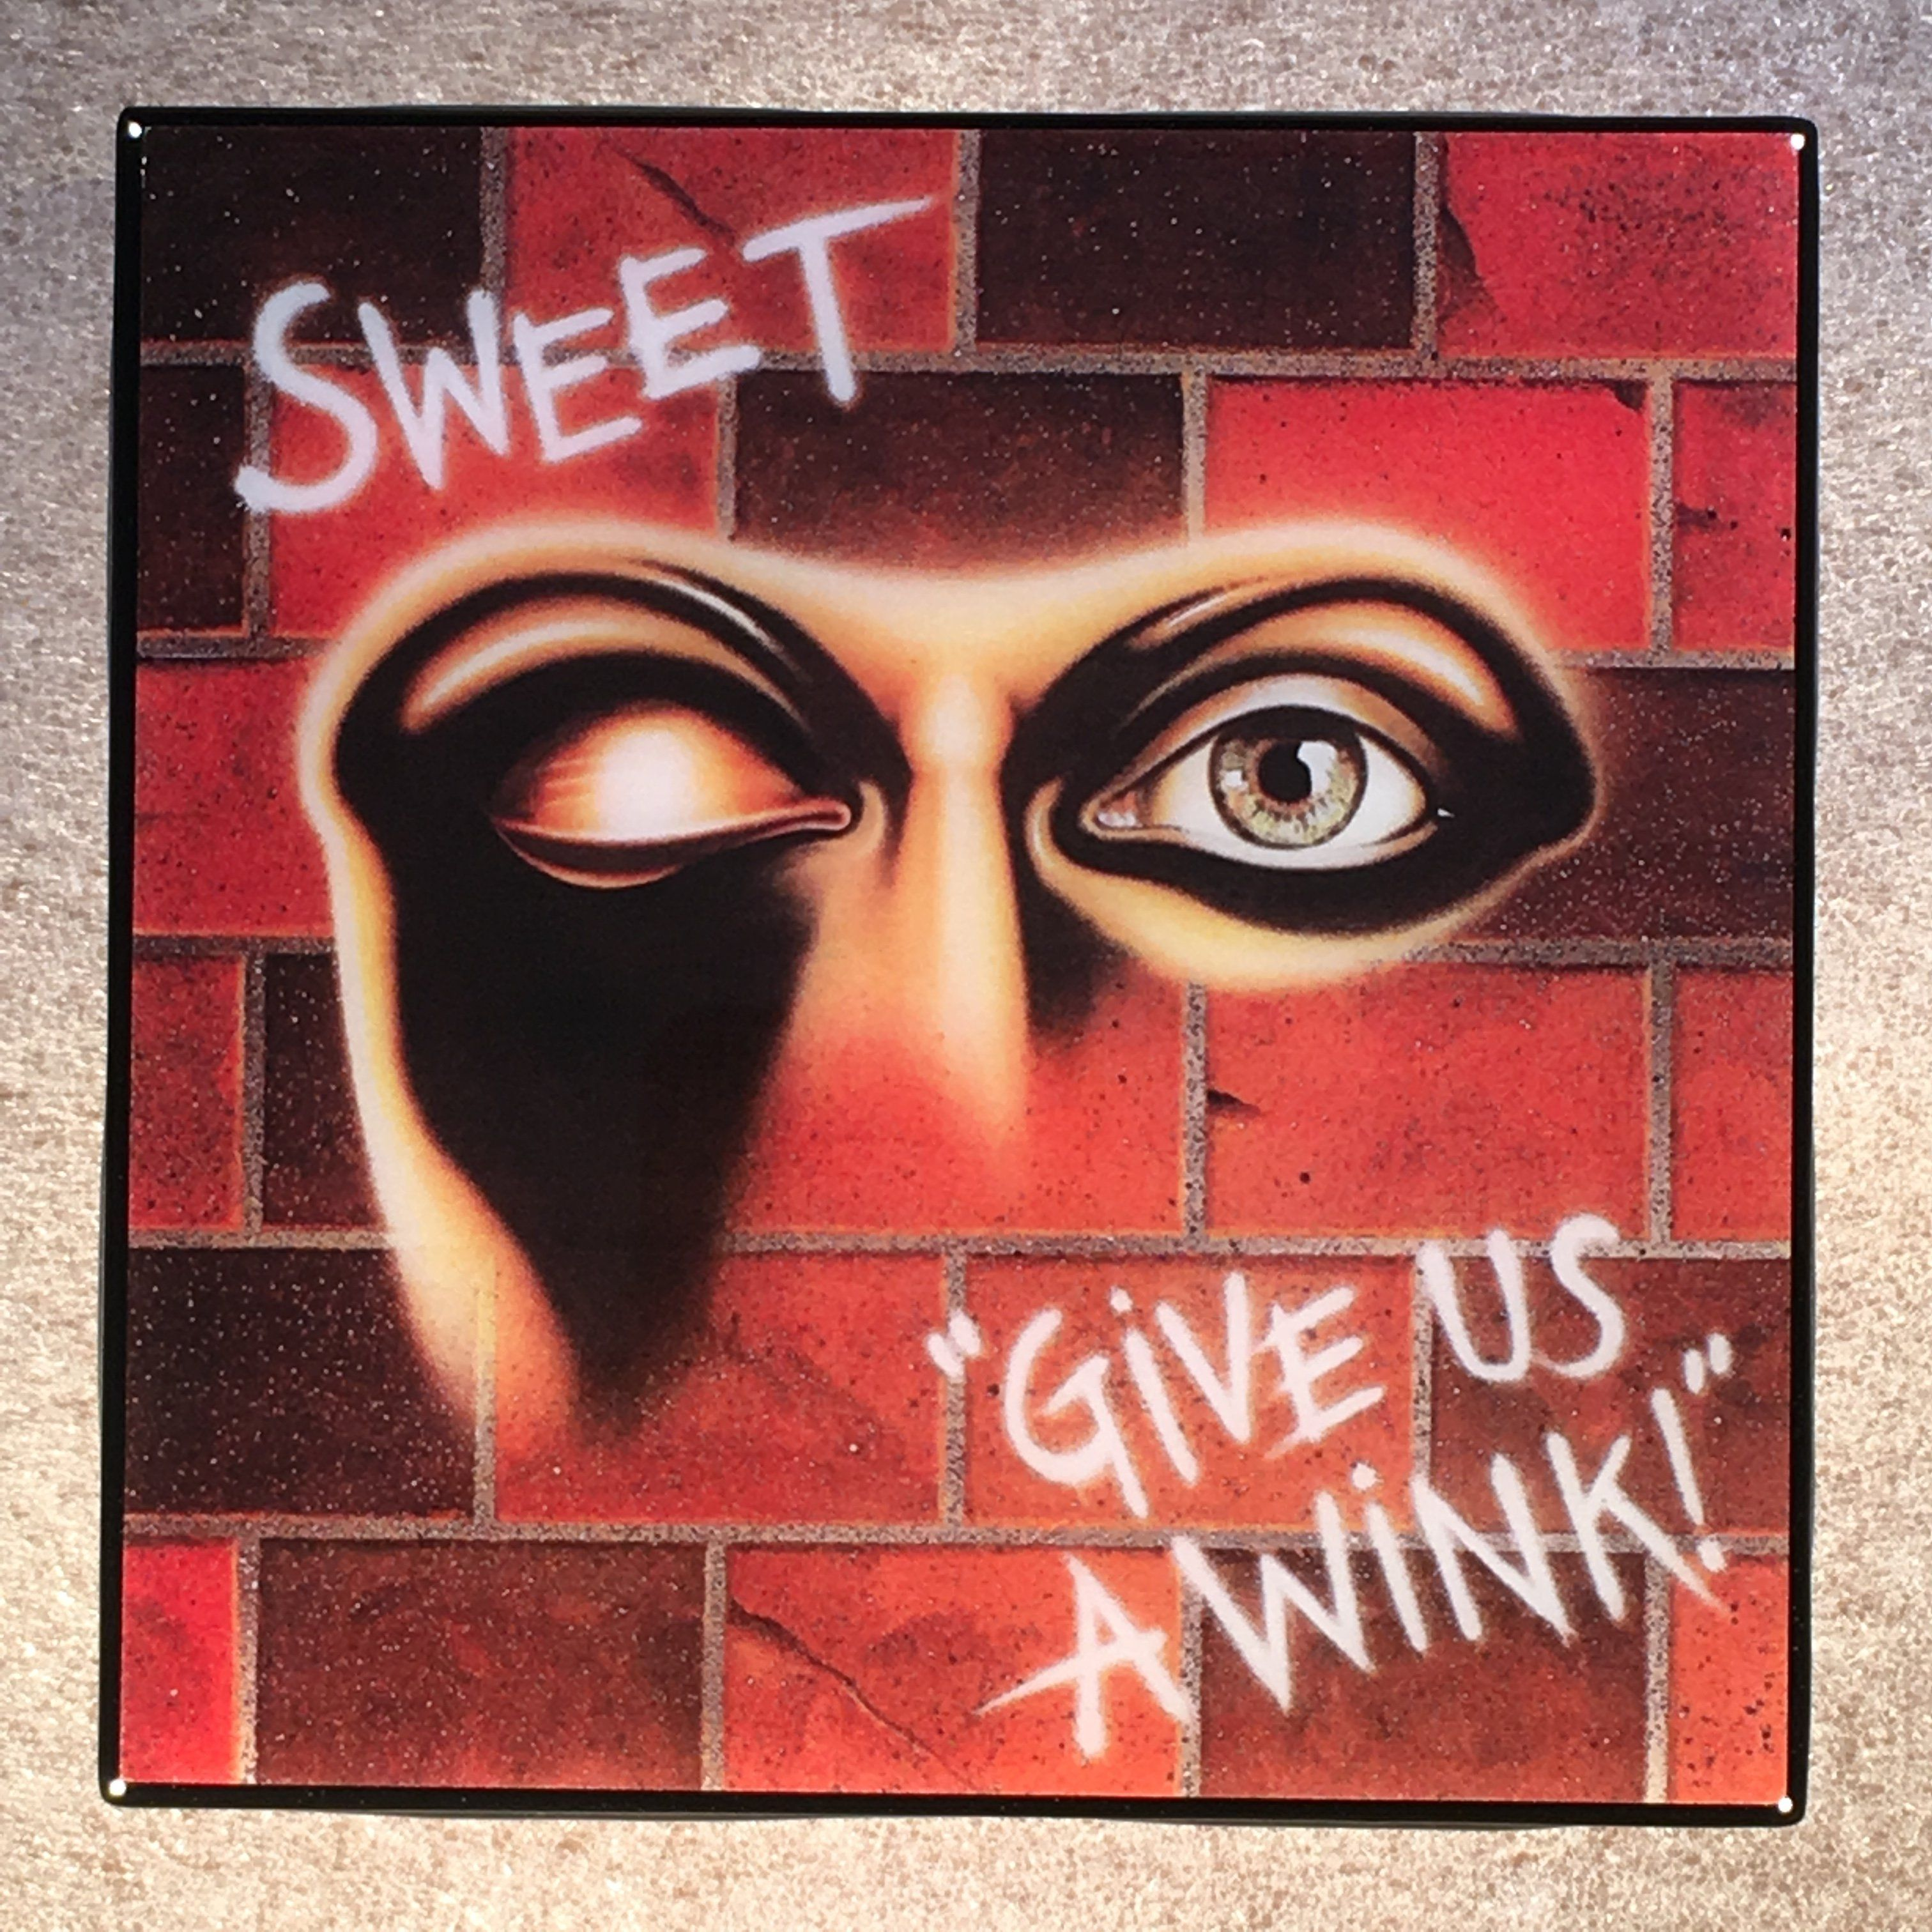 Us ceramic tile products columbialabelsfo sweet give us a wink coaster record cover ceramic tile products dailygadgetfo Gallery